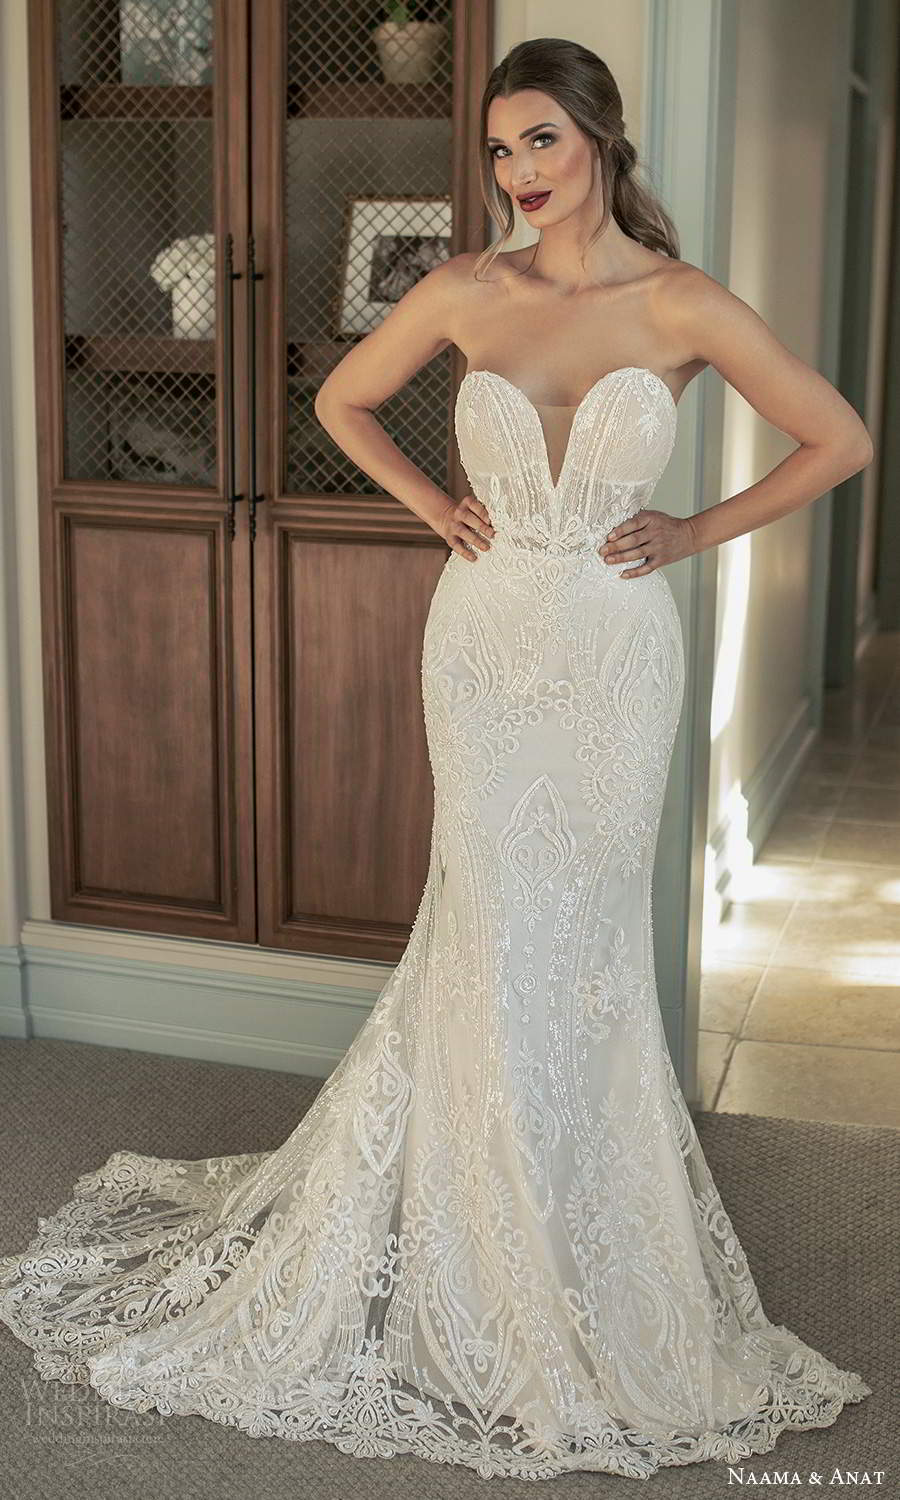 naama and anat fall 2021 bridalstrapless plunging sweetheart neckline fully embellished fit flare mermaid wedding dress chapel train (5) mv